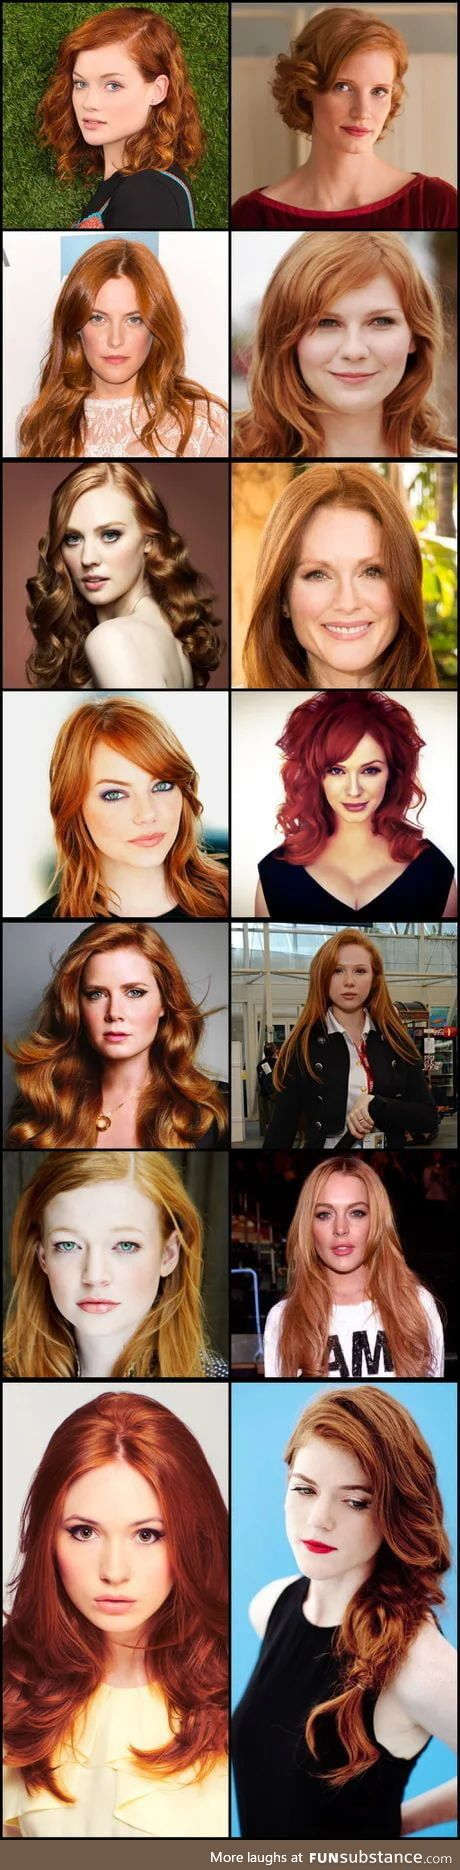 A dose of redheads